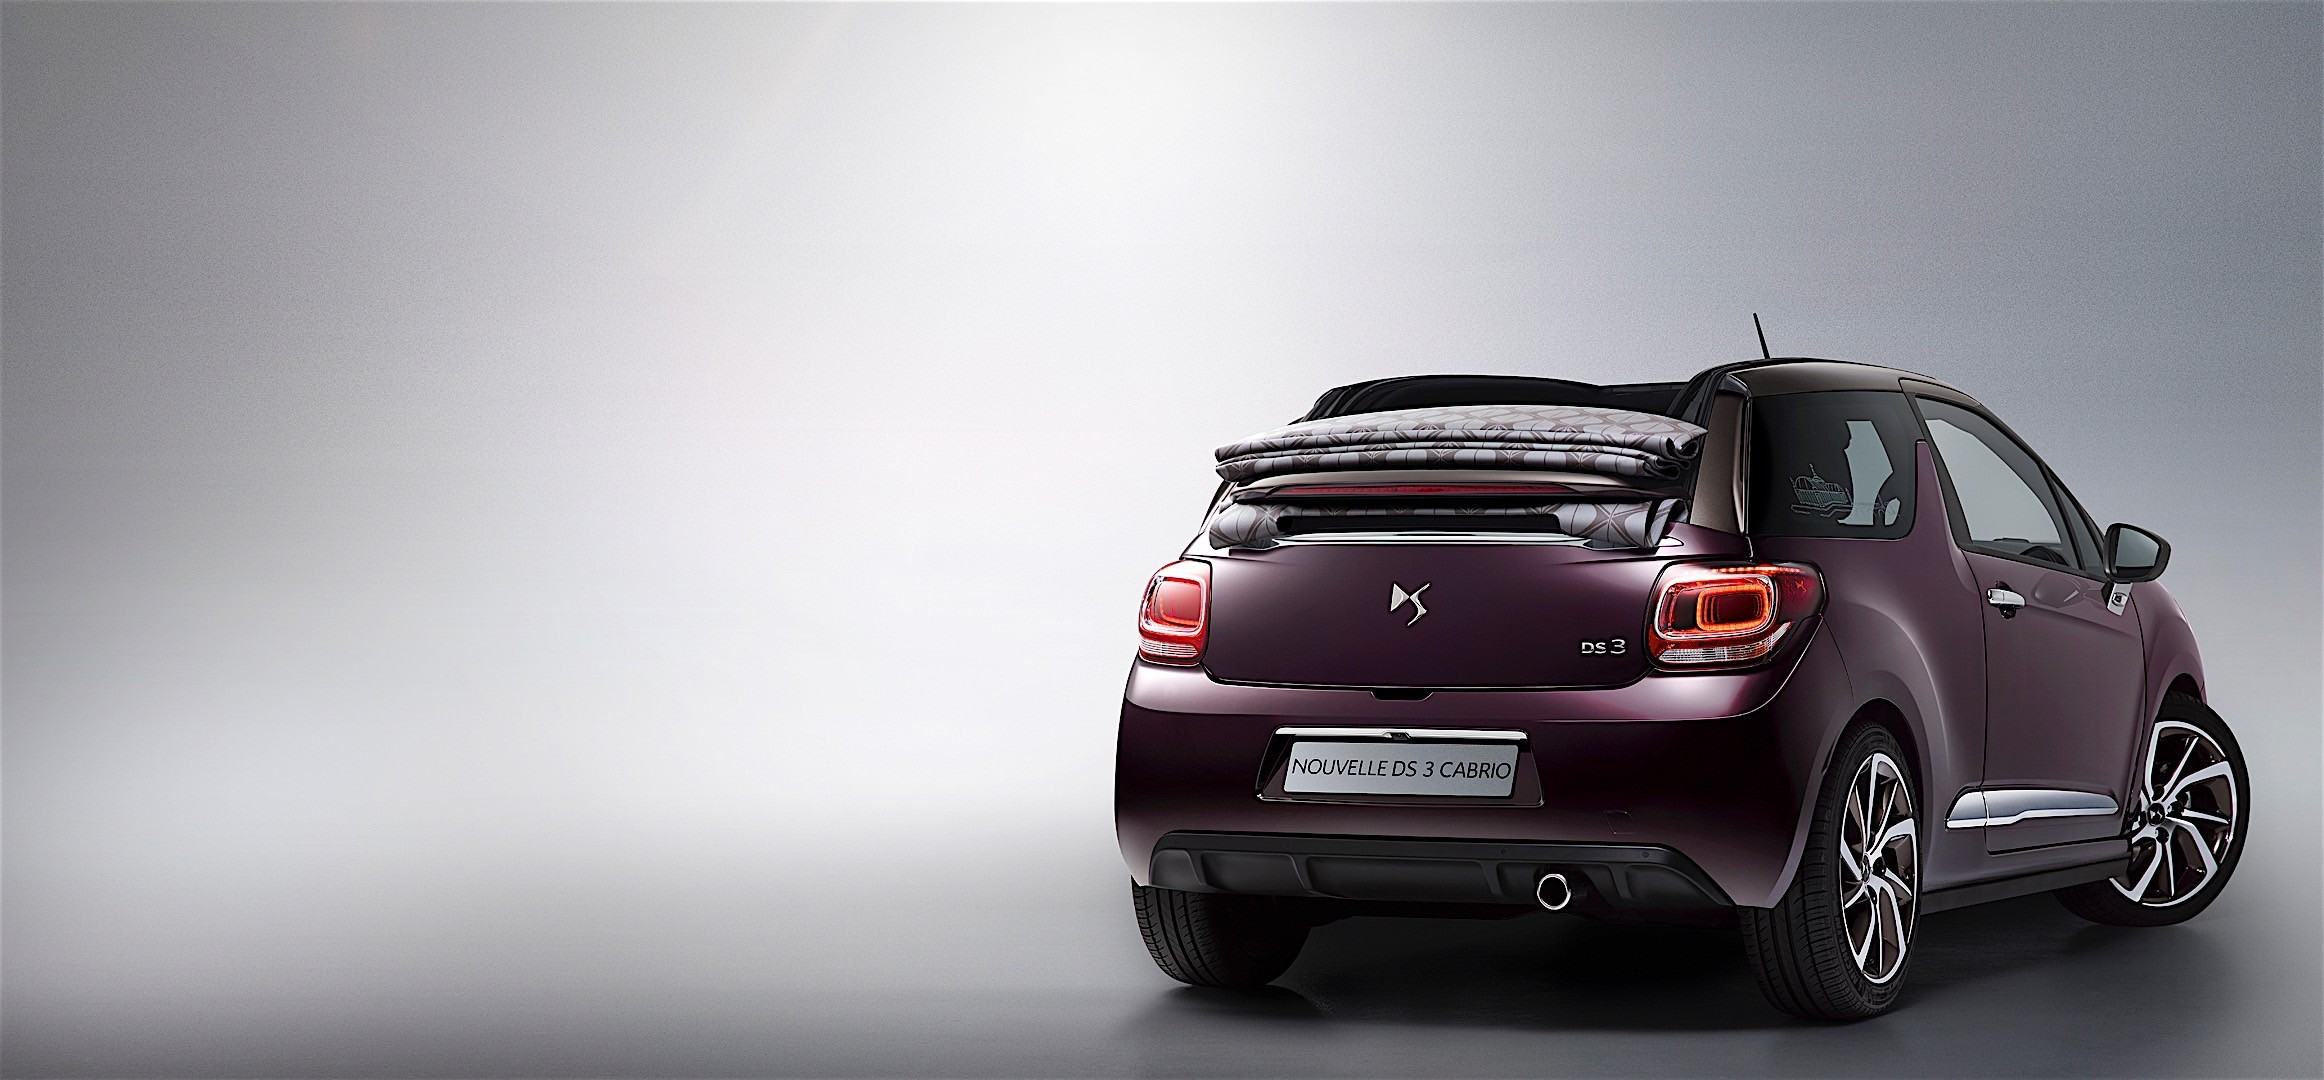 citroen ds3 cabrio 2016 autoevolution. Black Bedroom Furniture Sets. Home Design Ideas